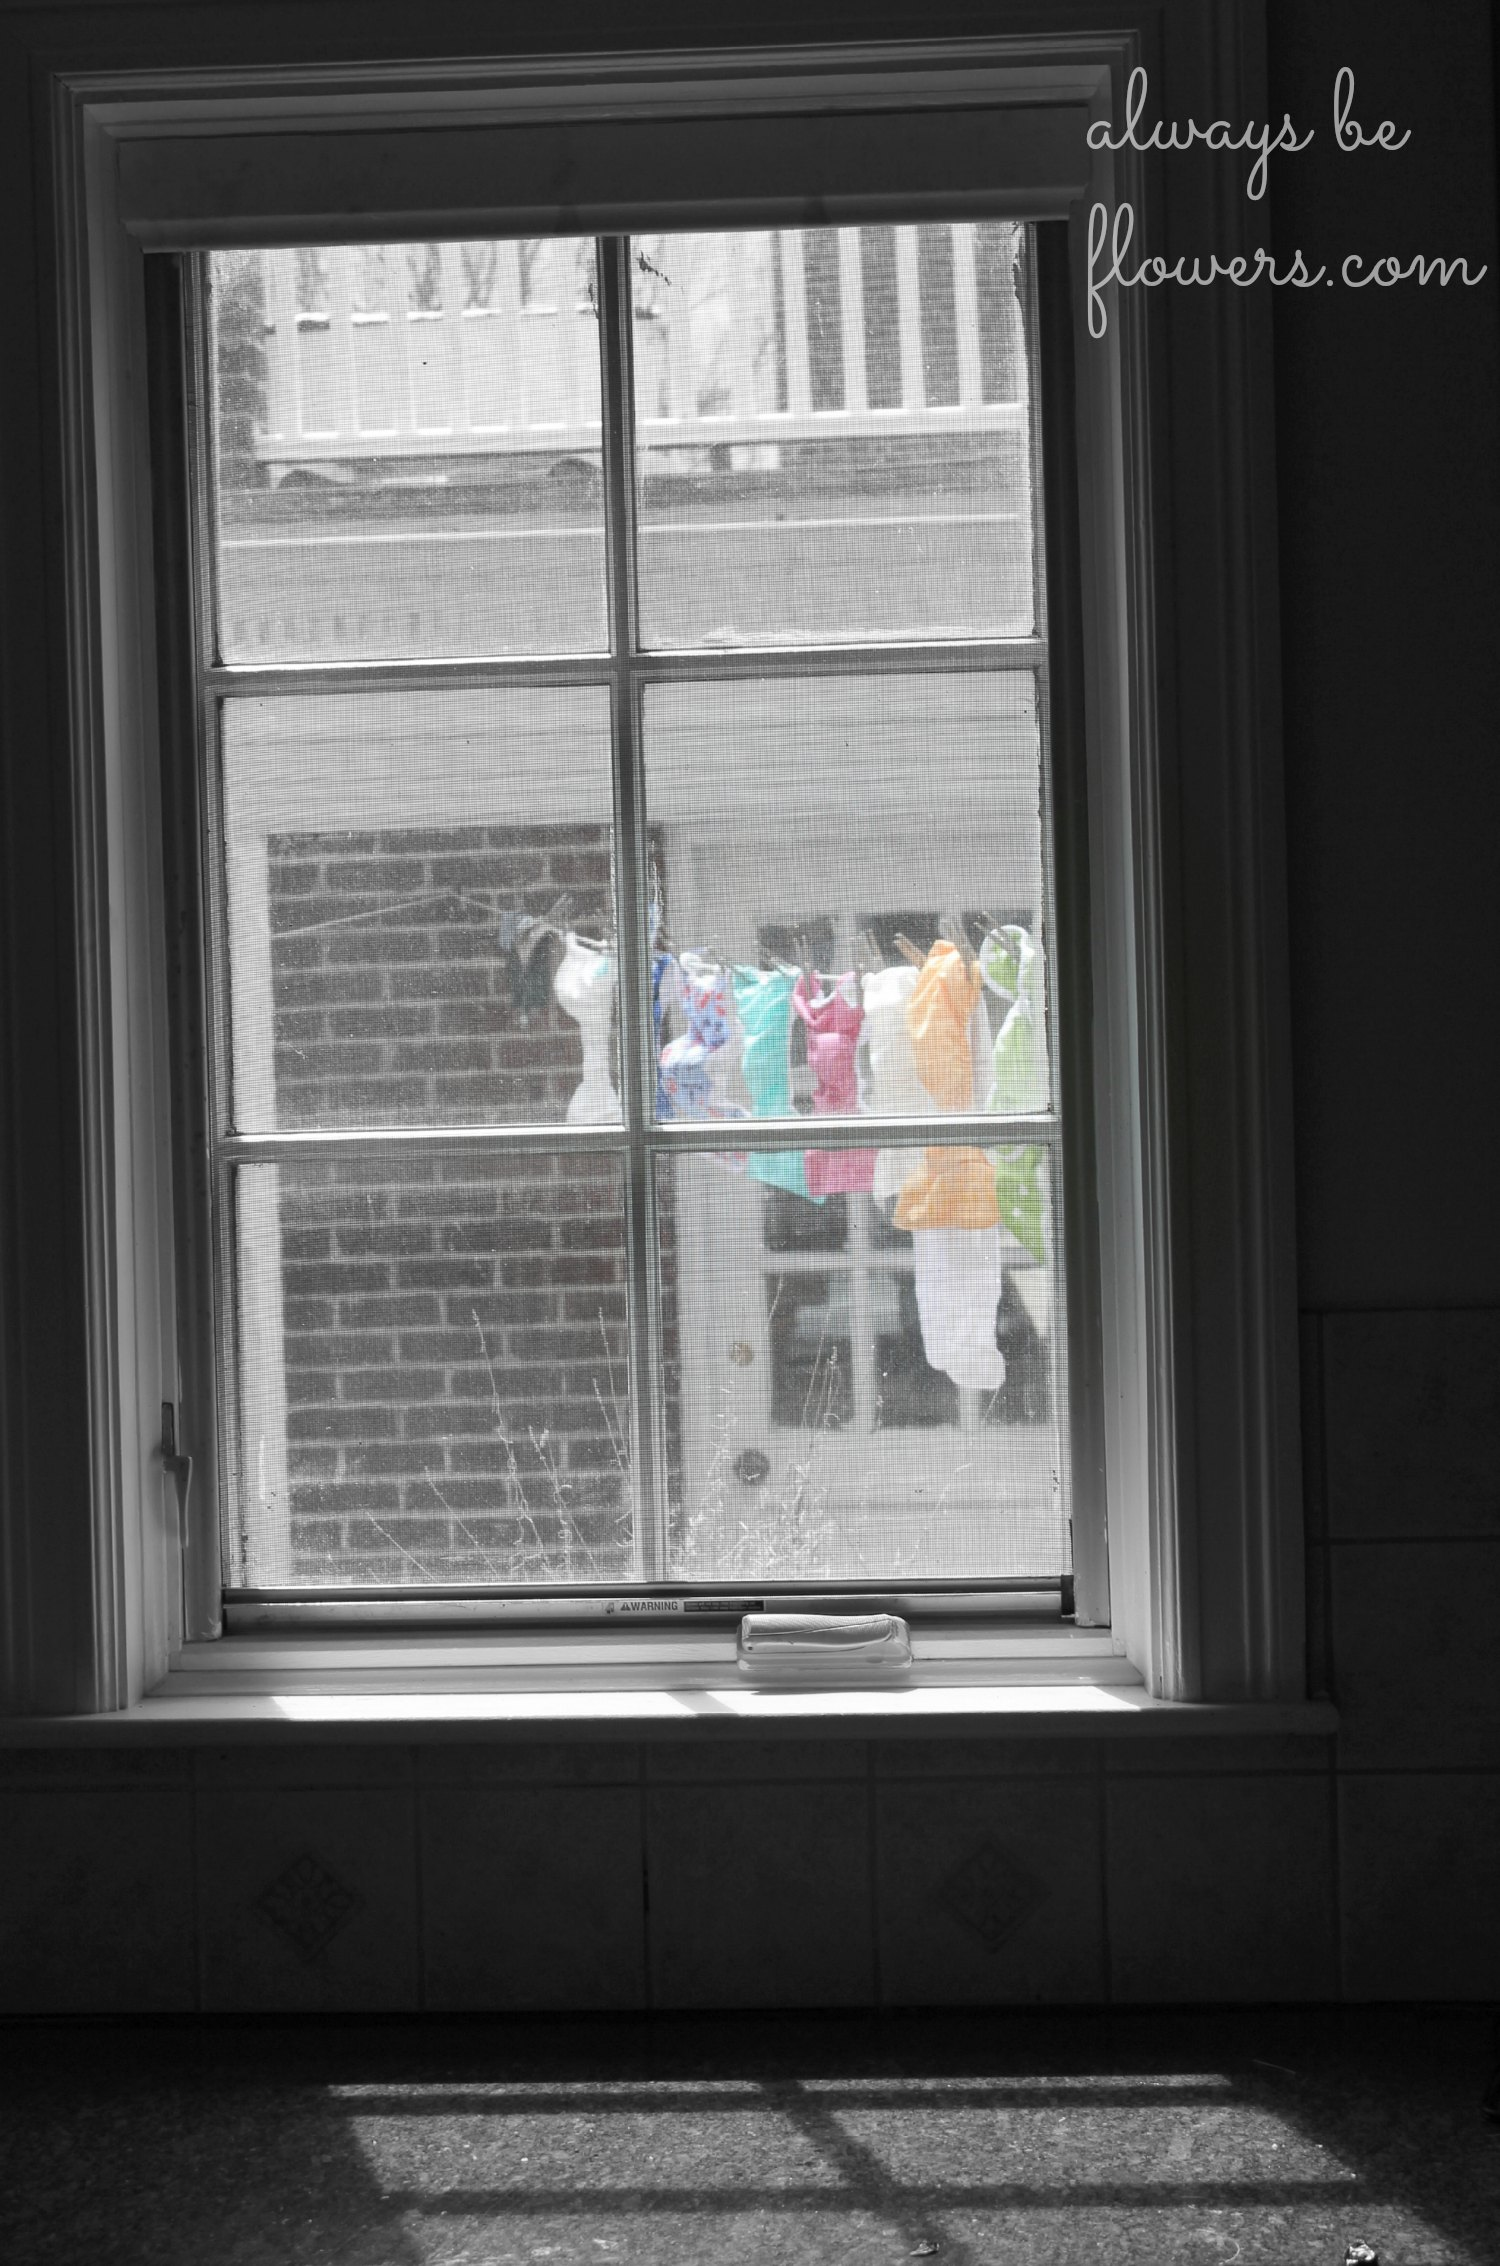 While cloth diapers hanging on the clothesline was a normal sight for my grandmother, I'm pretty sure she would find the fun colors frivolous.